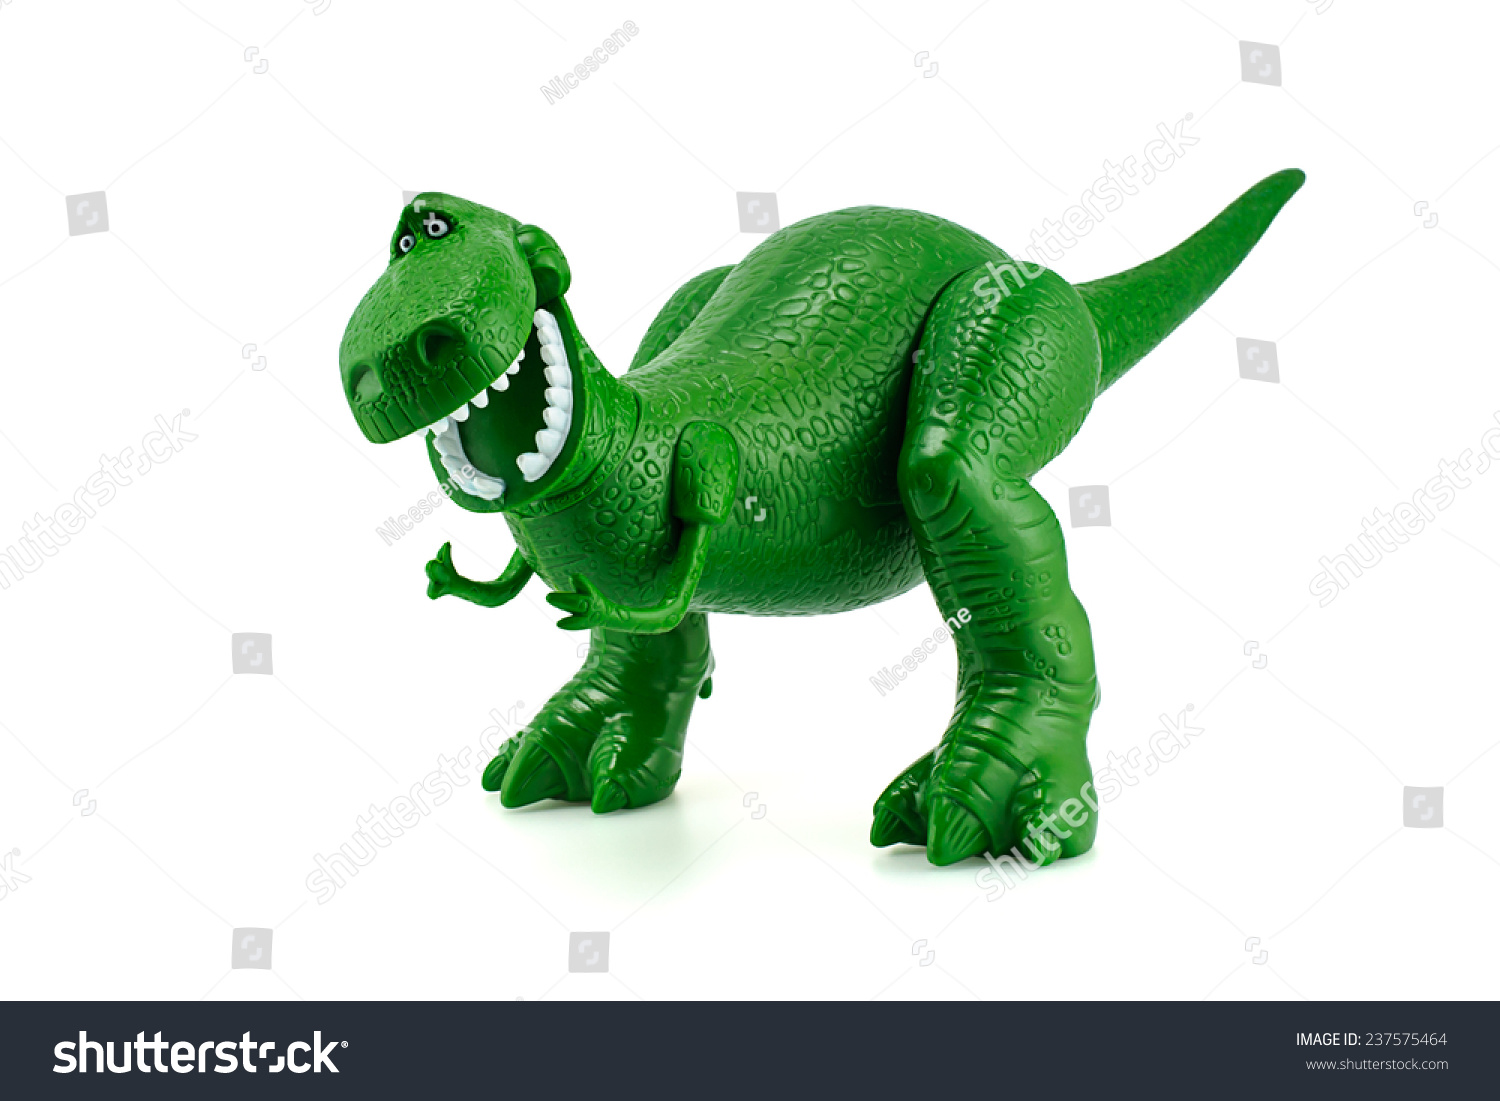 Toy Story Dinosaur : Bangkok thailand december rex stock photo